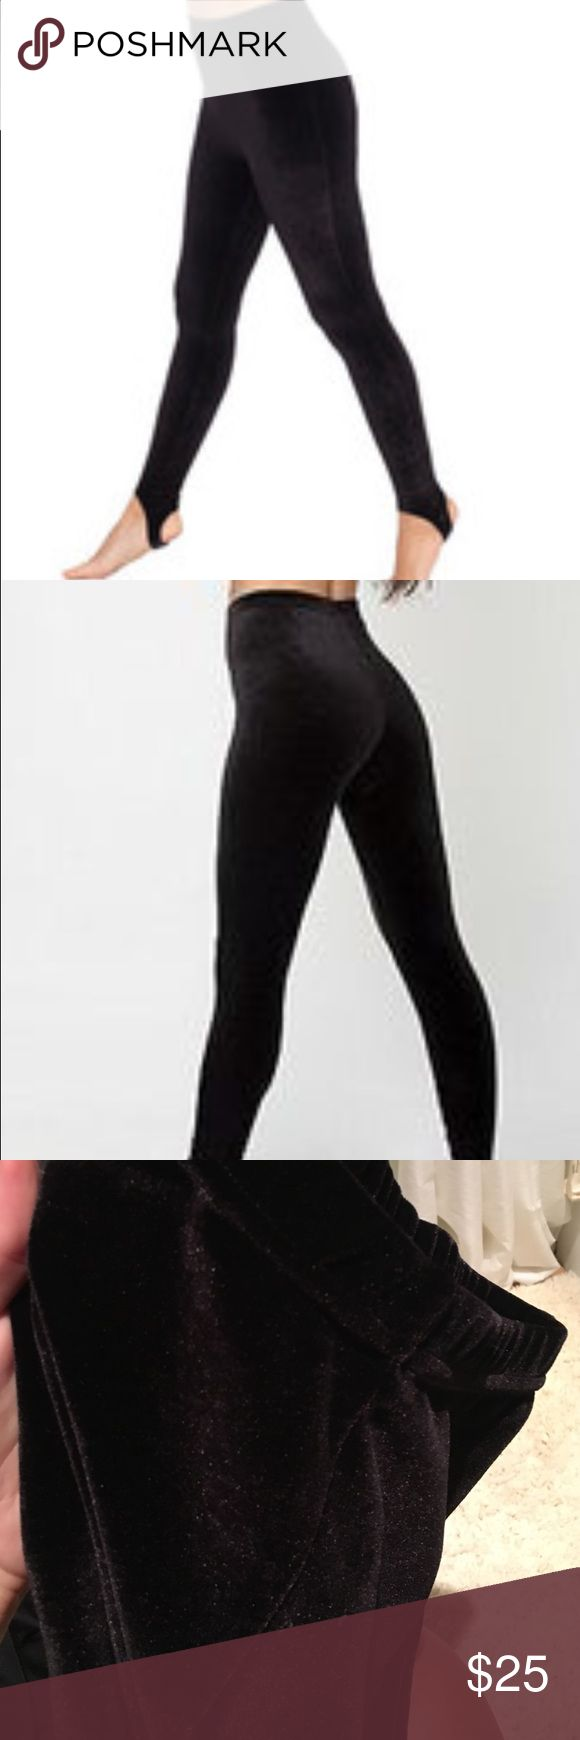 American Apparel Stretch Velvet Stirrup Legging Black American Apparel Stretch Velvet Stirrup Legging. In great condition. Pictured just as the first picture! American Apparel Pants Leggings